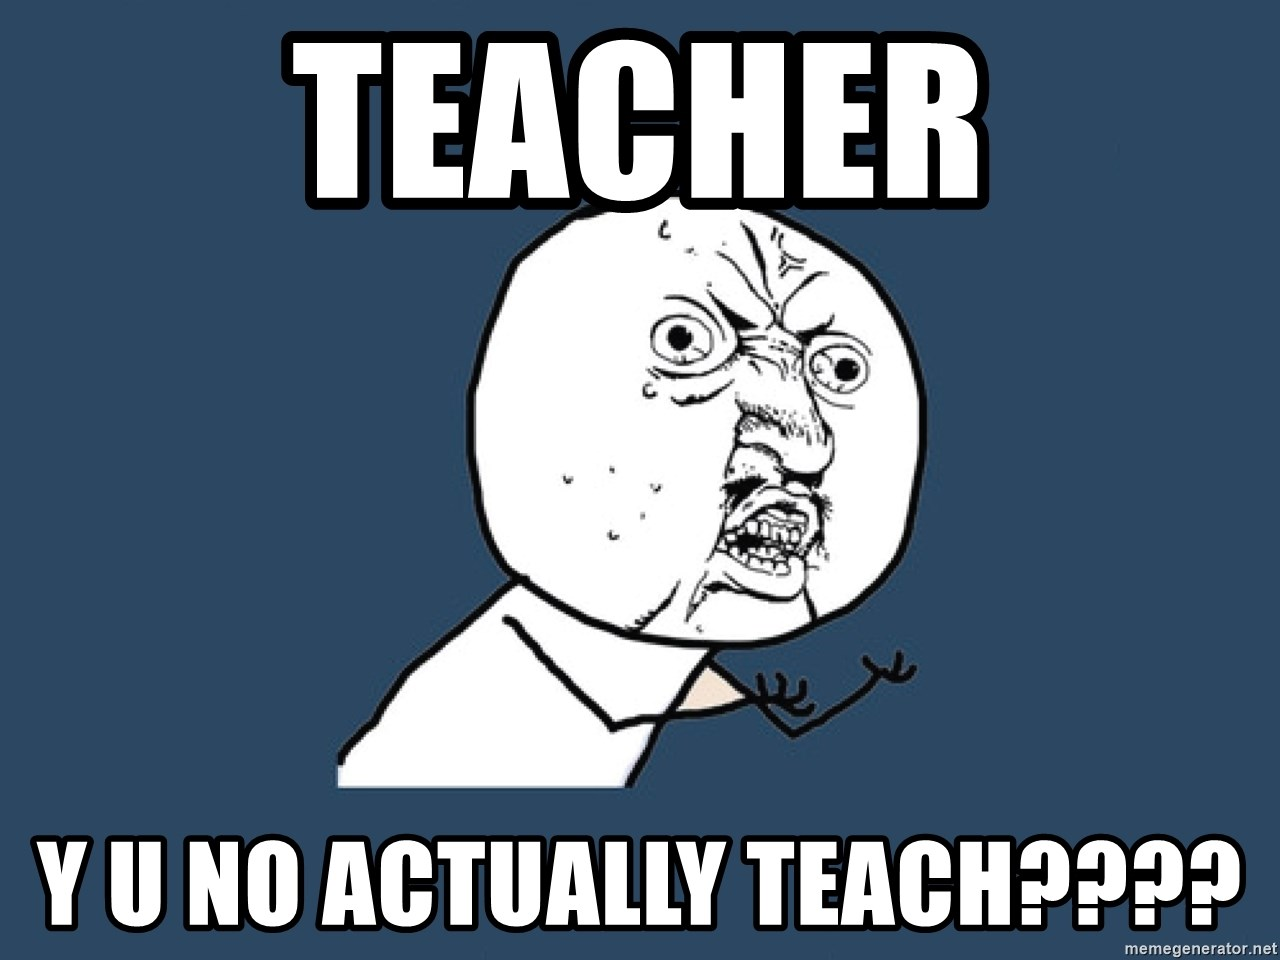 Y U No - Teacher y u no actually teach????